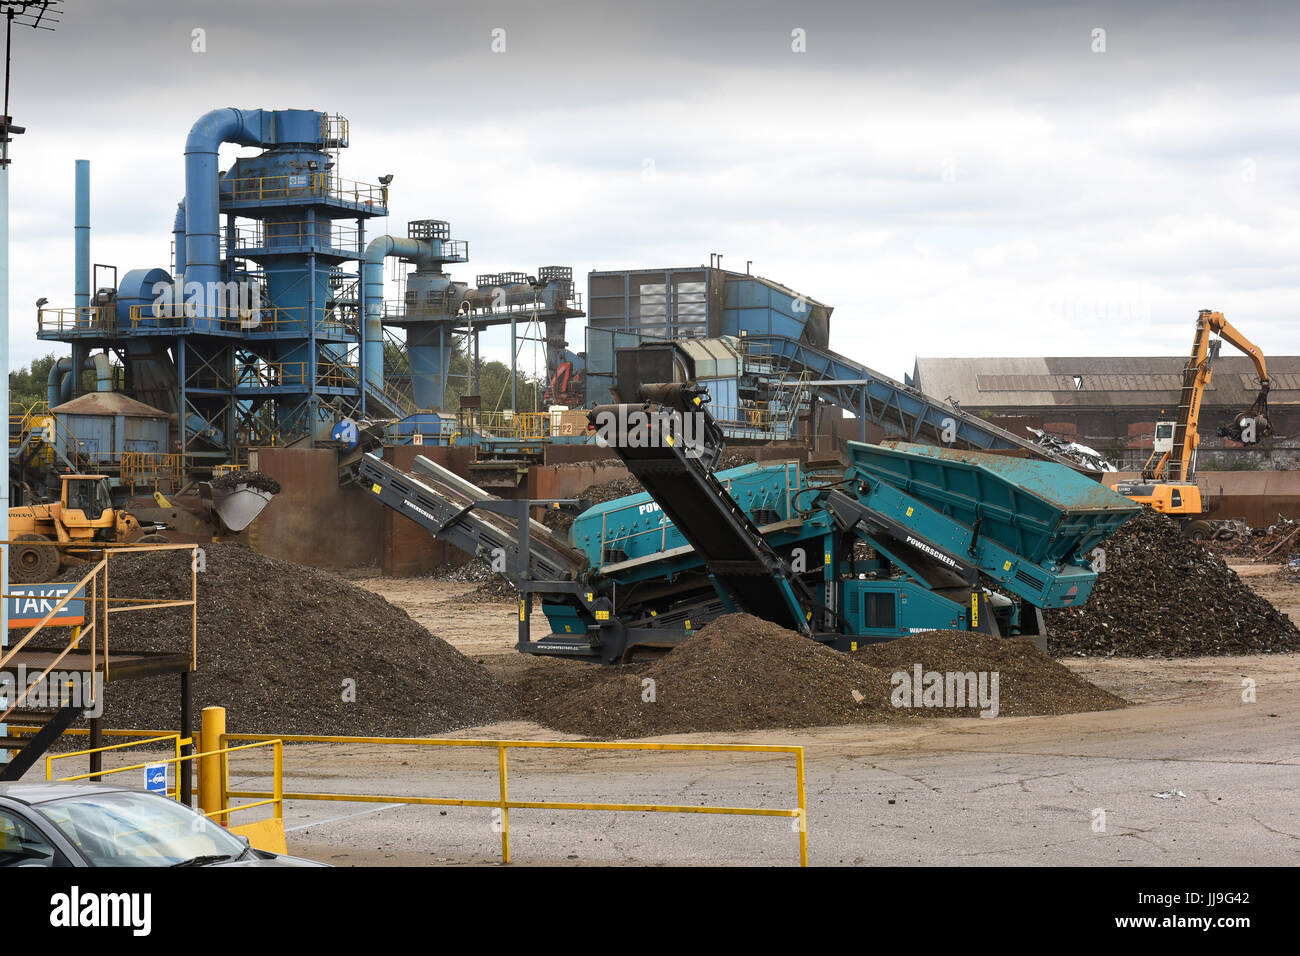 Scrap metal recycling site at Sims Metal Management in Smethwick, West Midlands. Stock Photo